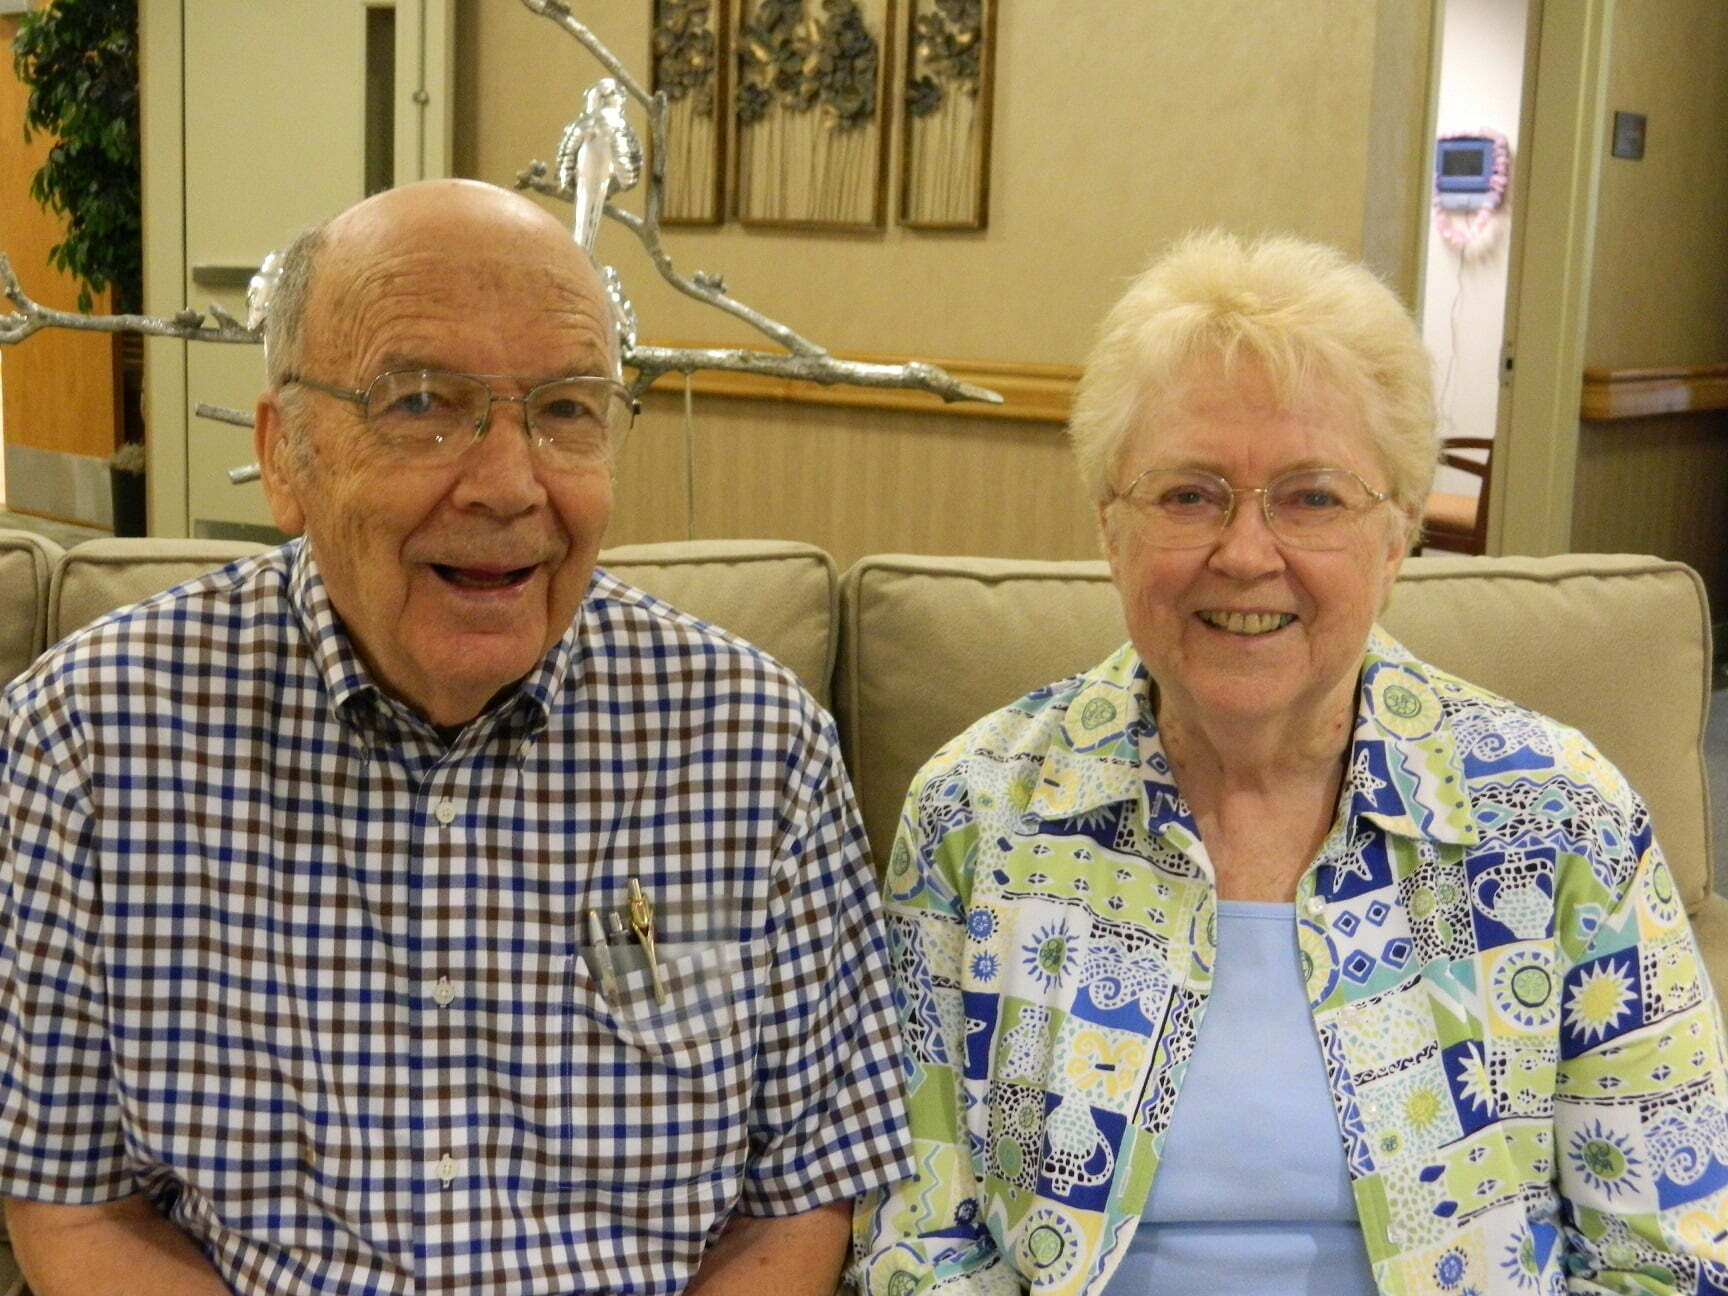 Dan and Fran Parker share about grandfather clock